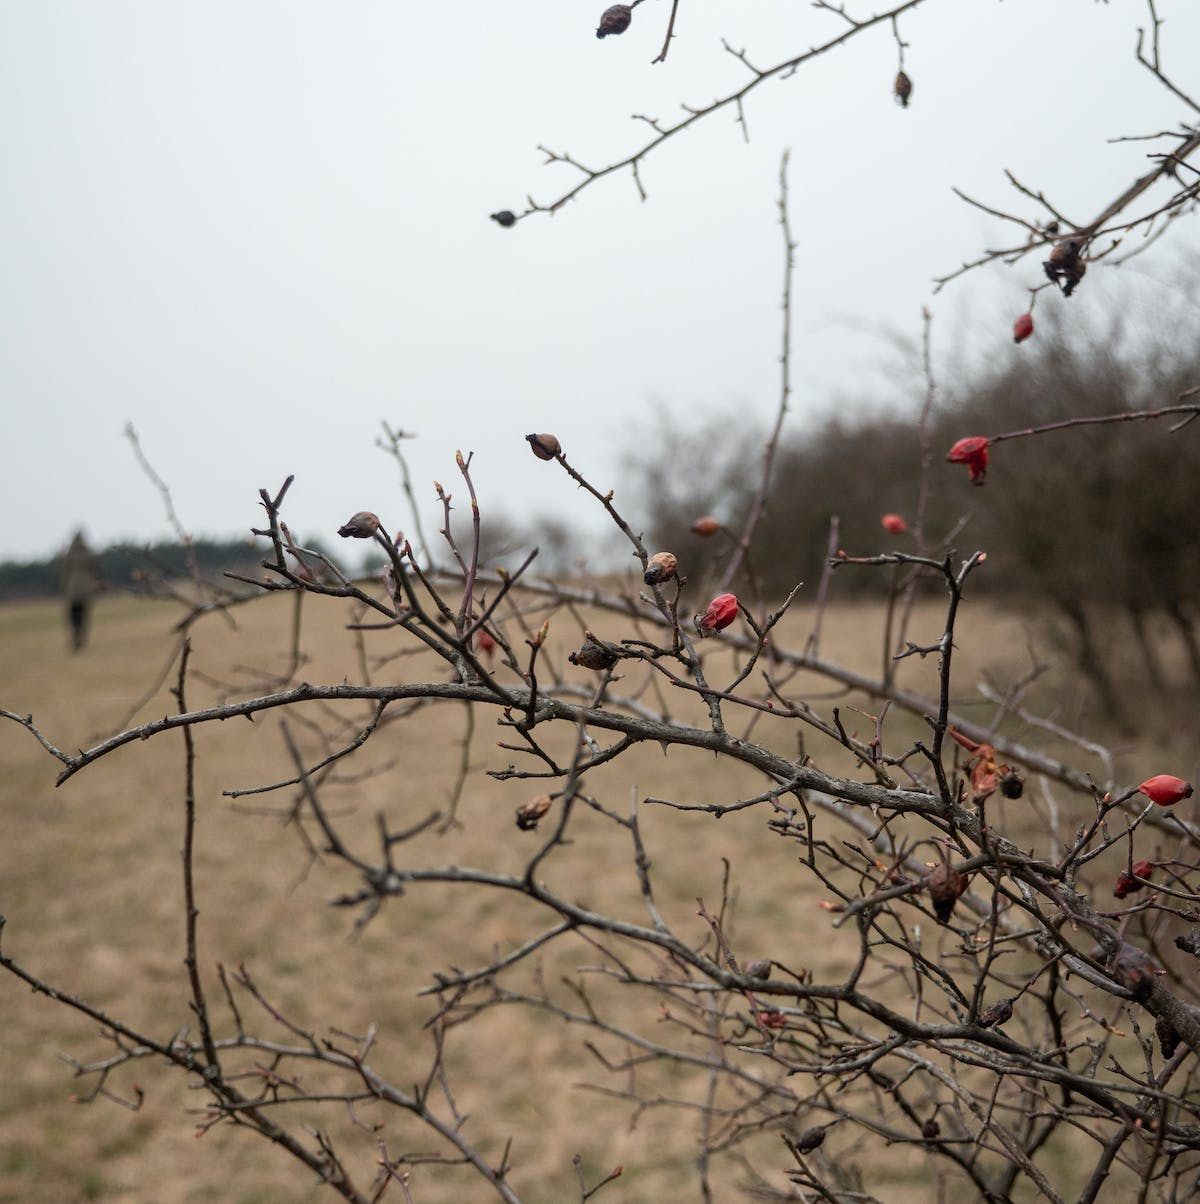 Berries cling to a the otherwise barren branches of a deciduous tree in winter